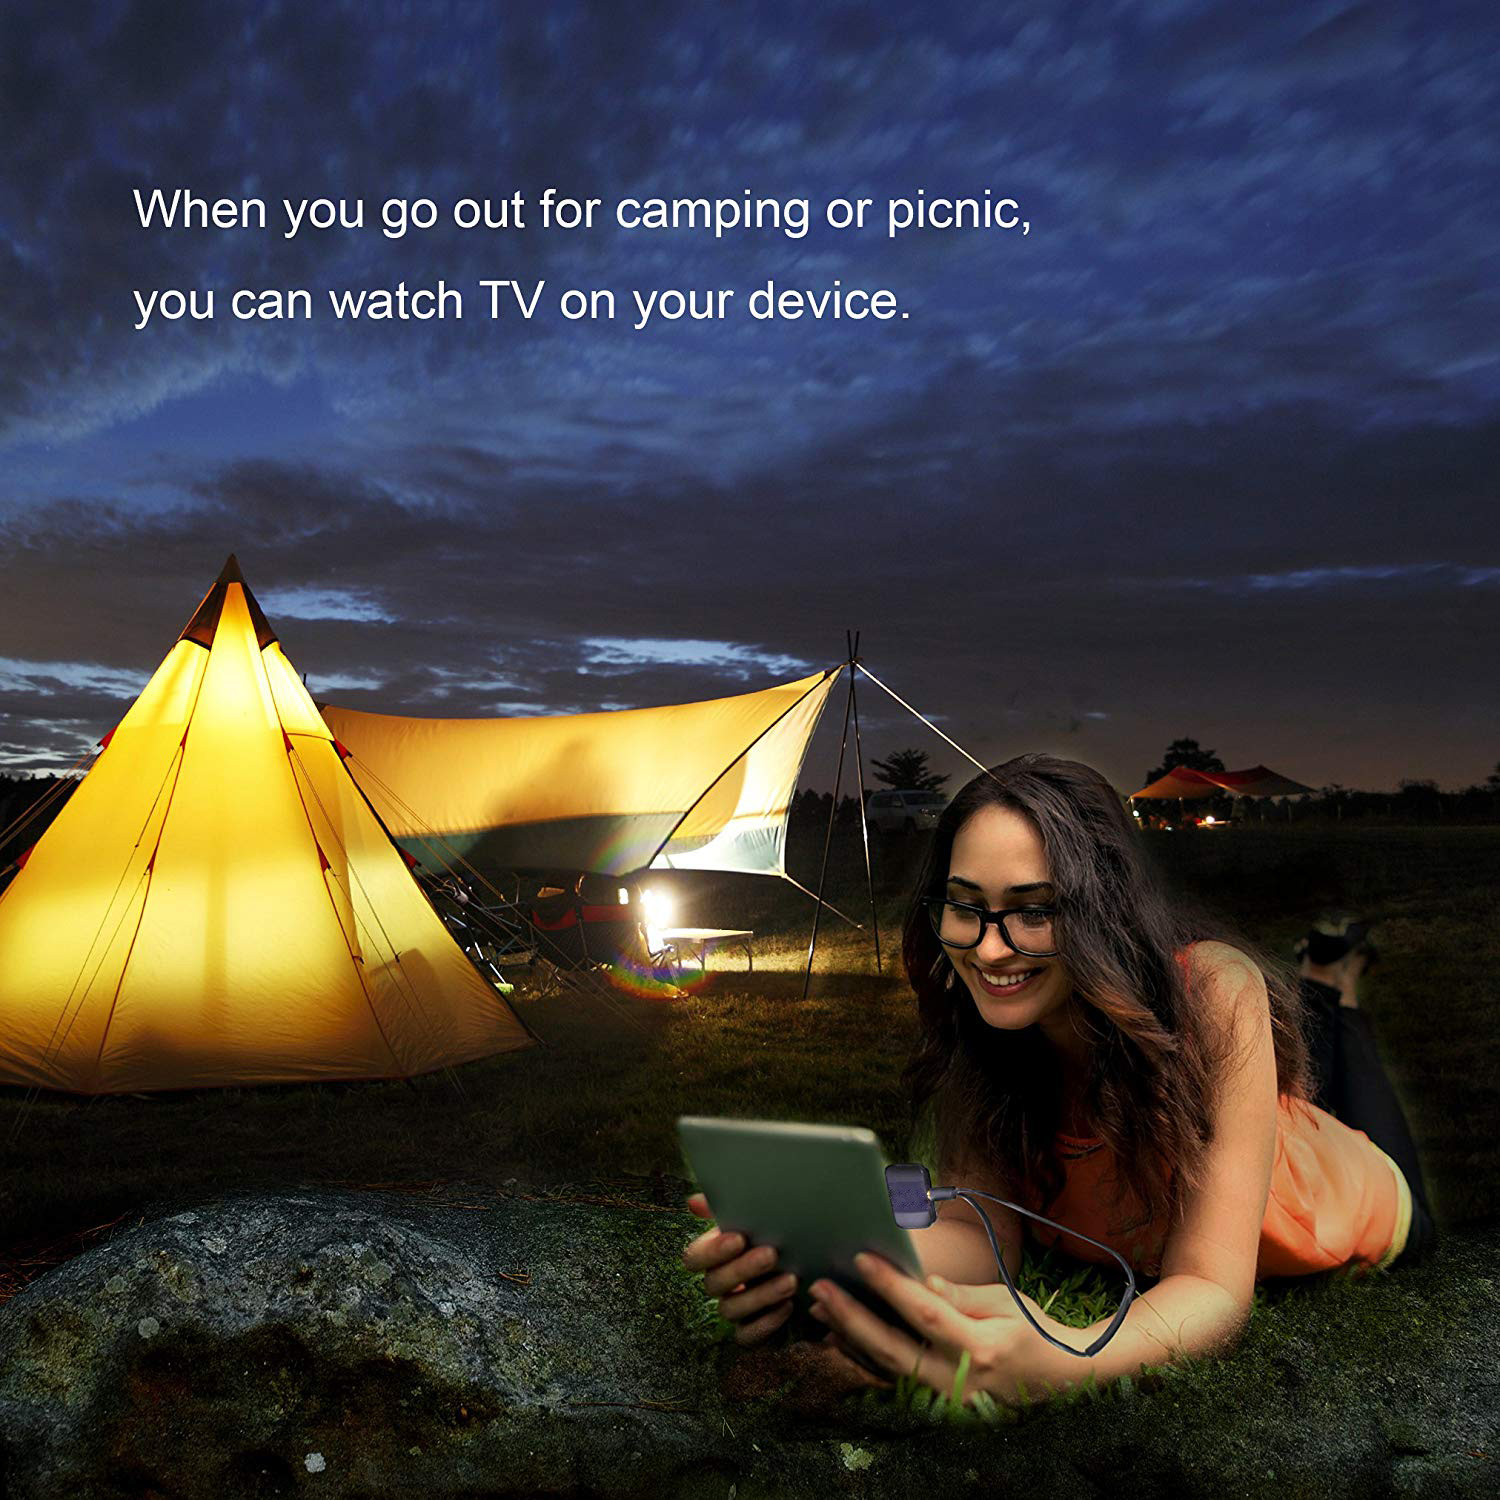 2020 Hot Sale ATSC/DVB-T2/ISDB Portable Mobile Download APK PAD Live TV Receiver/Tuner/Dongle To Watch TV Freely